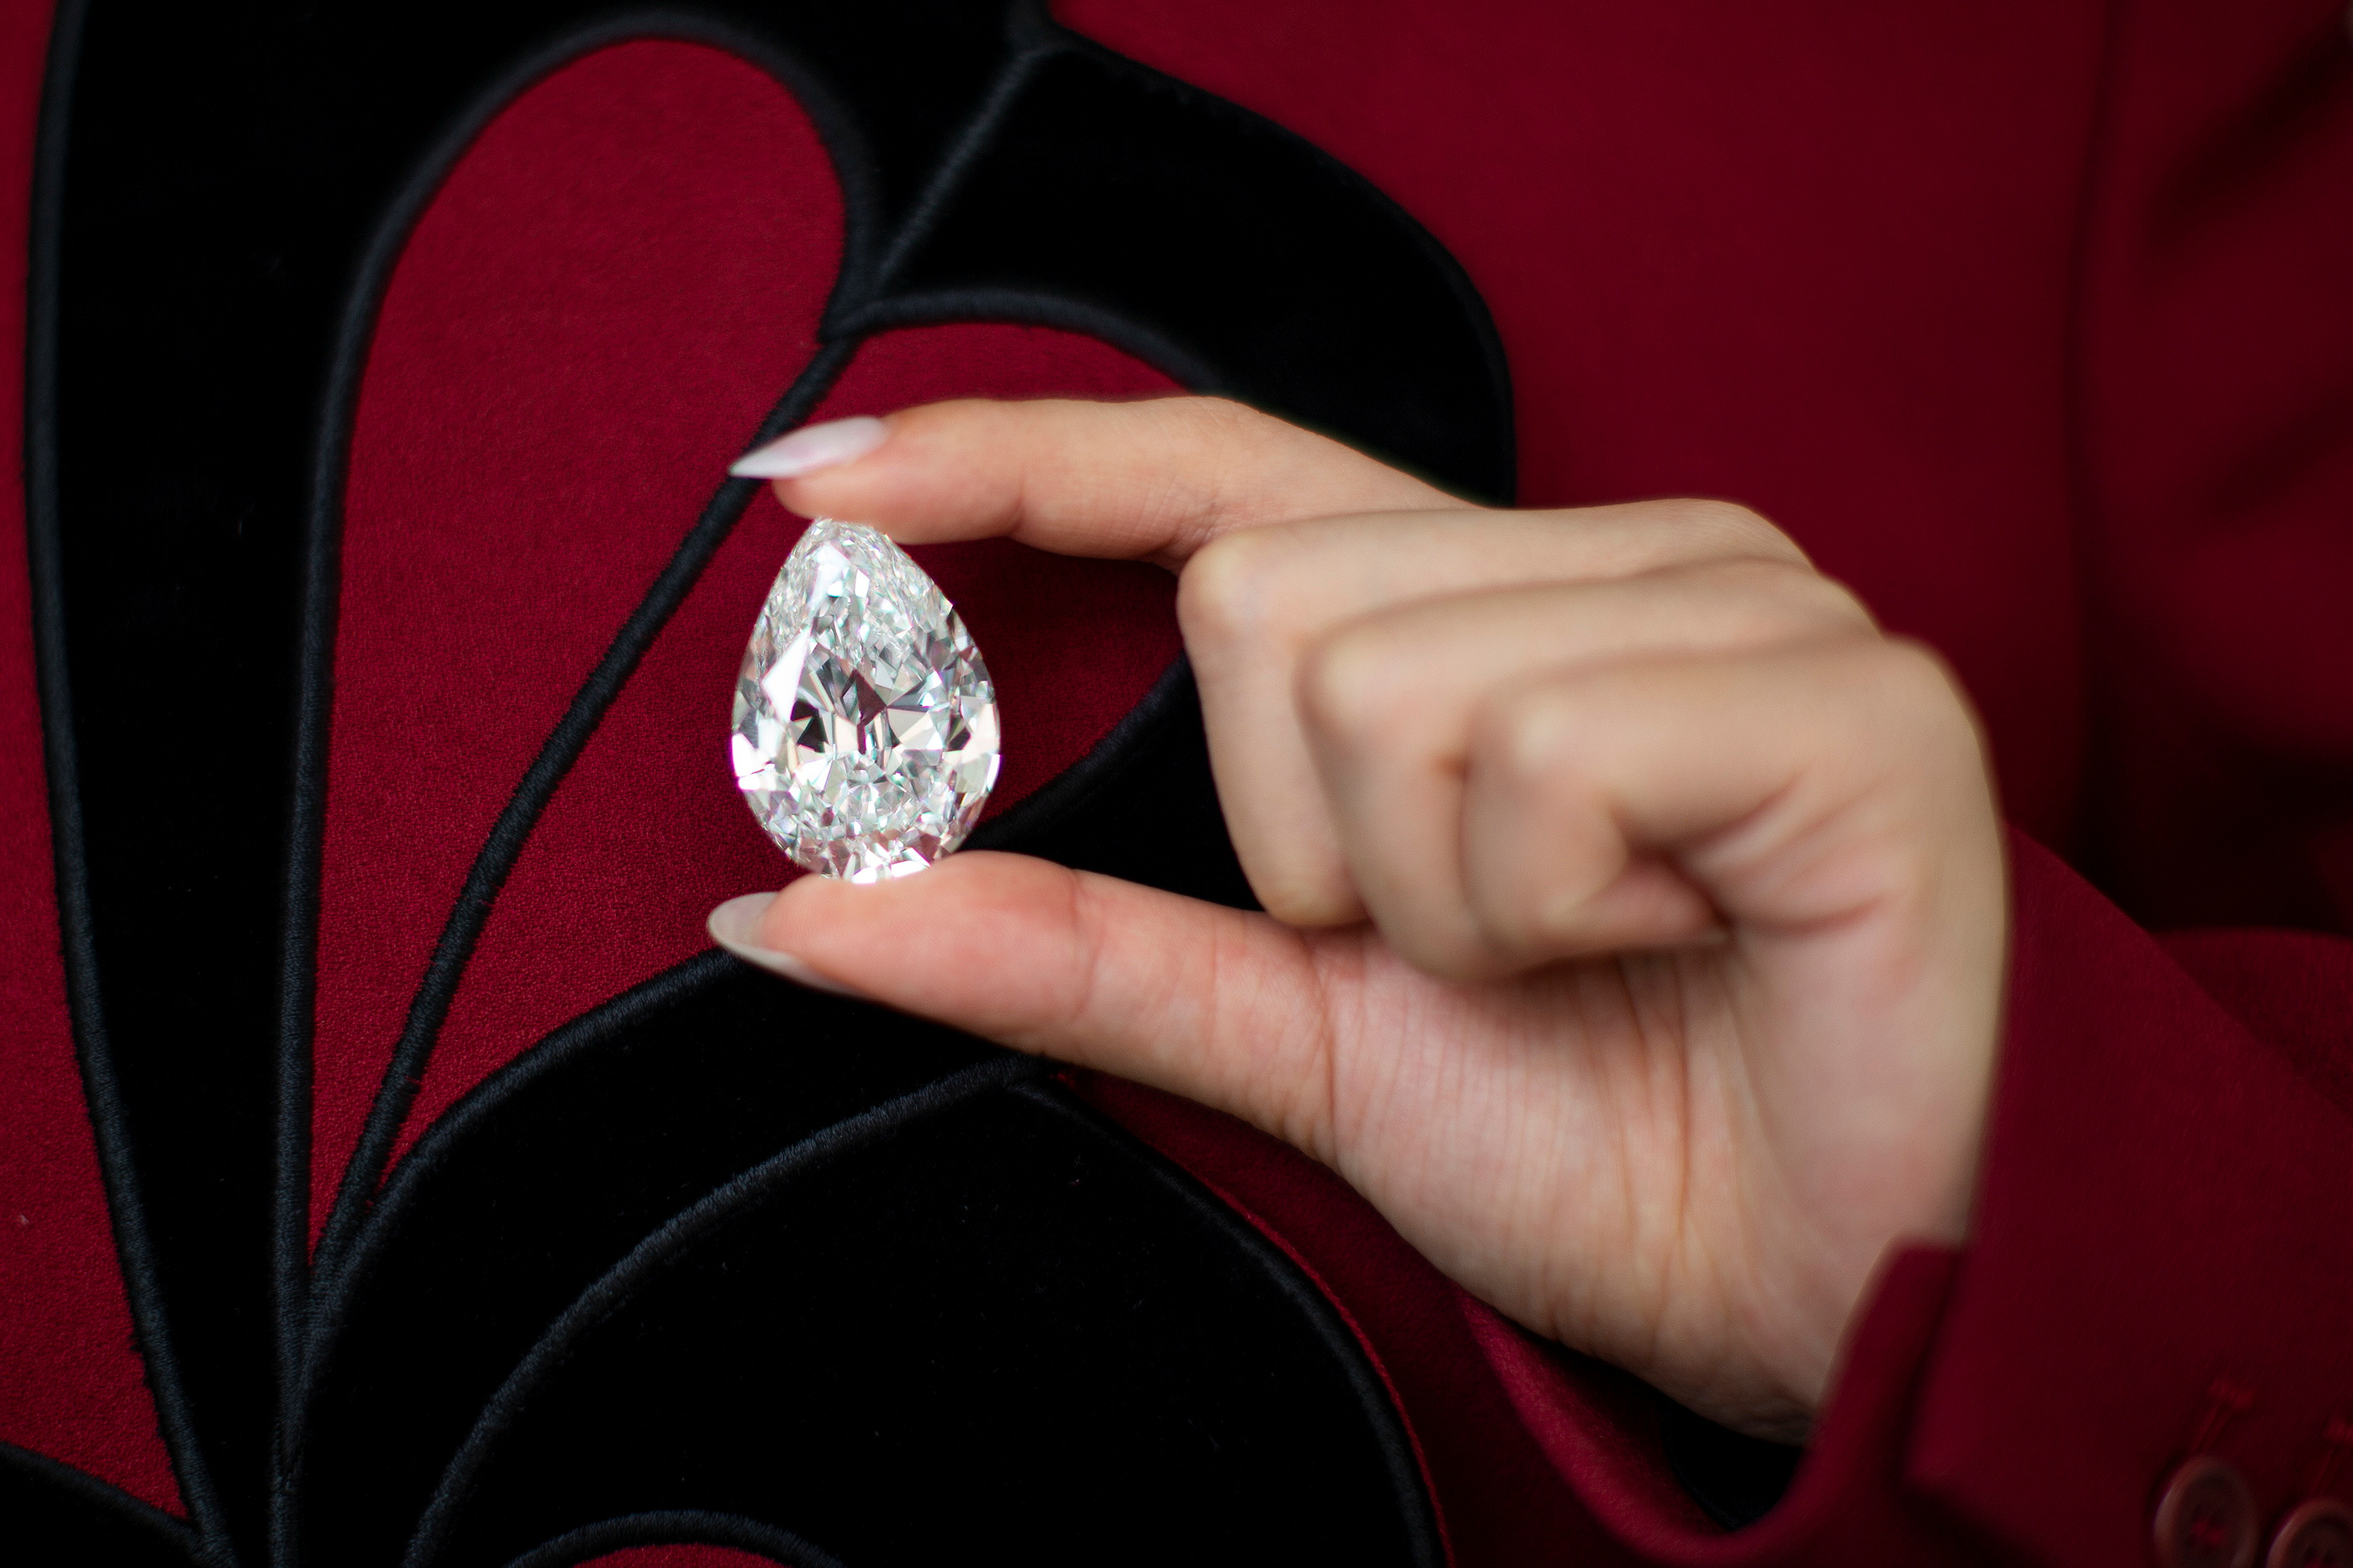 An employee of Sotheby's poses with a rare pear-Shaped D Colour Flawless 100+ carat diamond at Sotheby's in New York City, New York, U.S., June 21, 2021. REUTERS/Eduardo Munoz